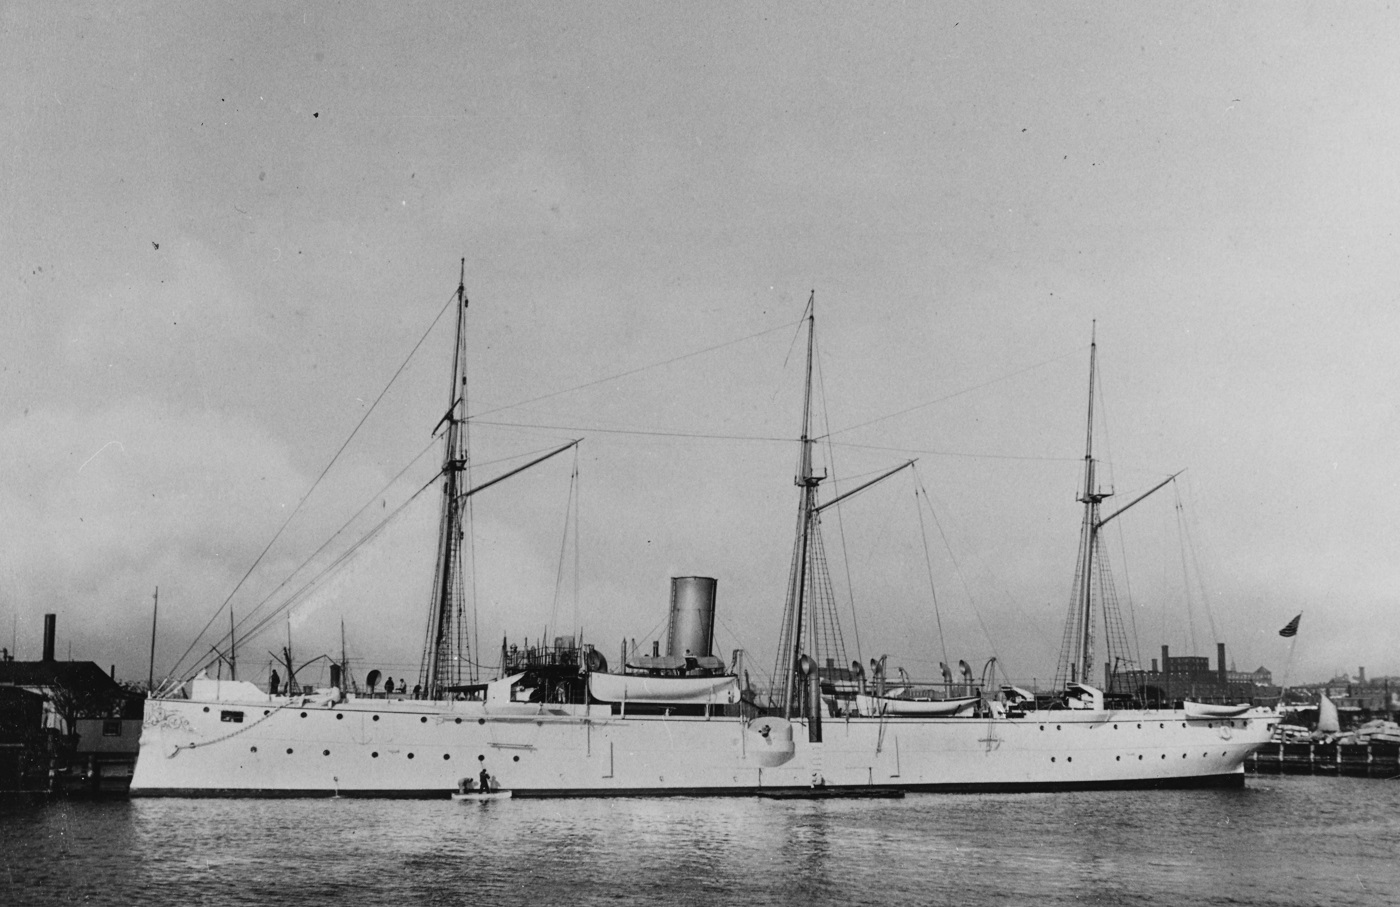 (Gunboat # 4) Photographed circa 1891 by J.S. Johnston, New York City. U.S. Naval History and Heritage Command Photograph. Catalog #: NH 63248